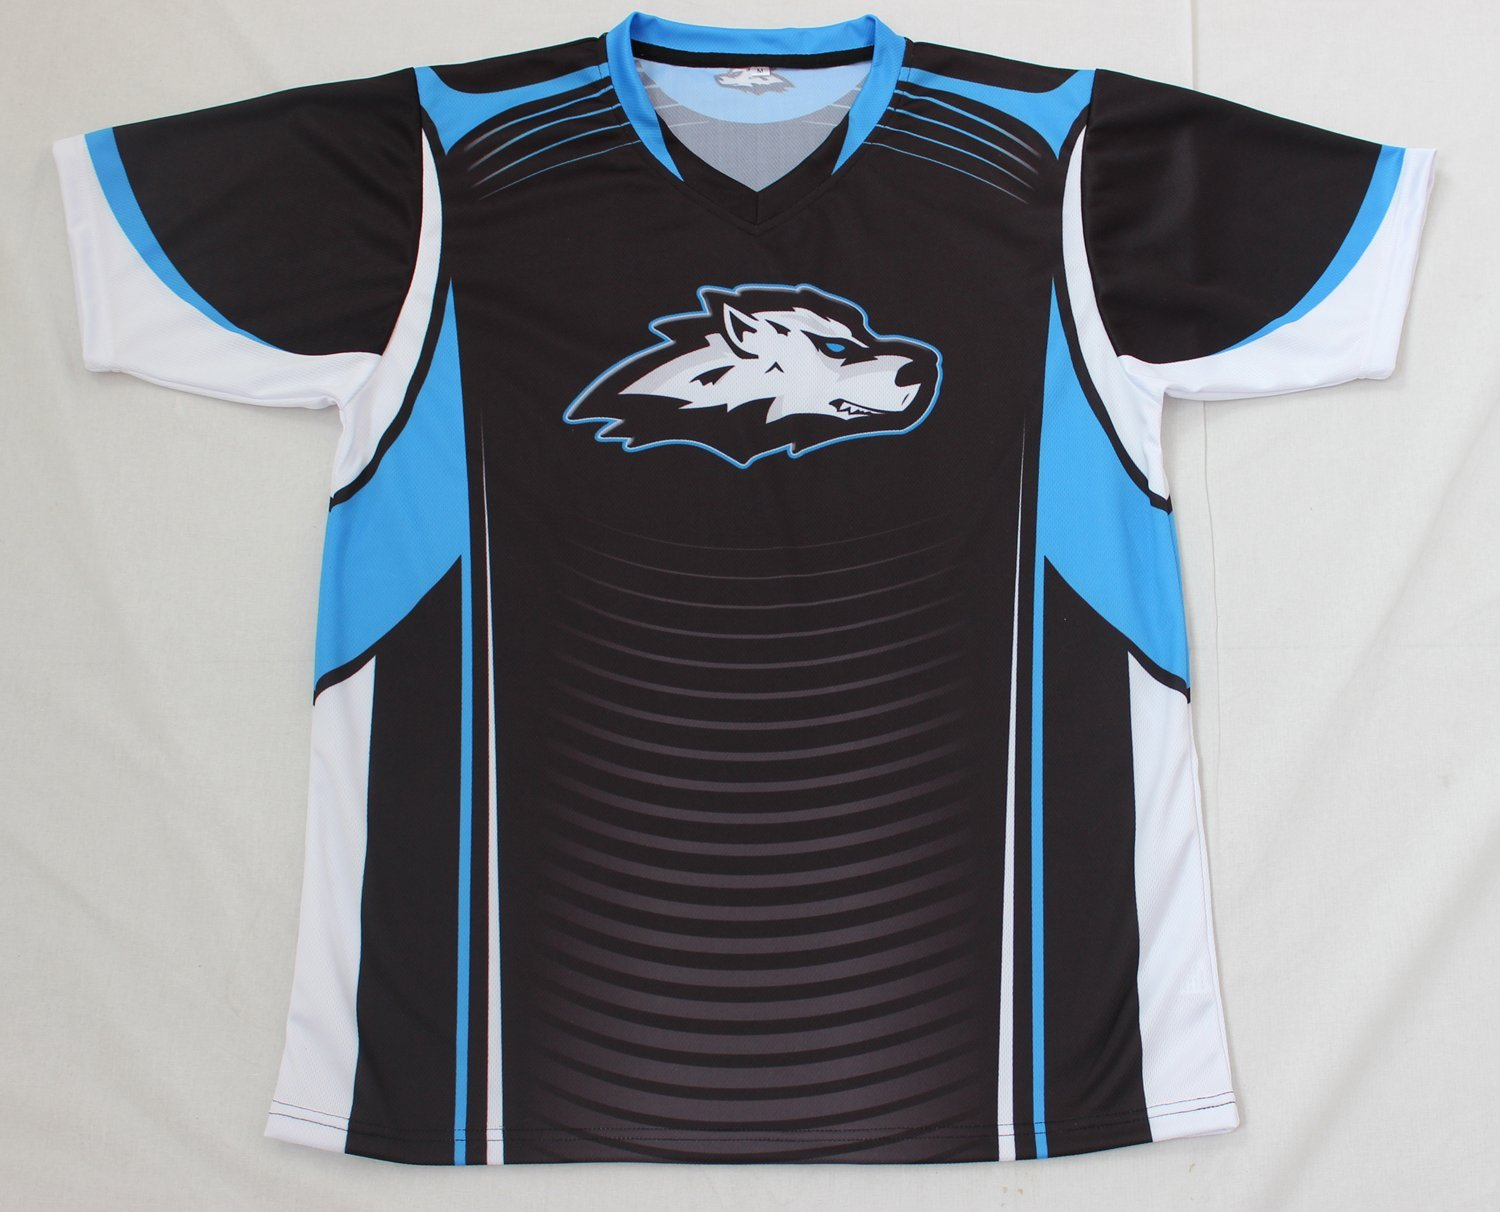 9da6e5c903b ... Jersey Custom Gaming Jerseys with Your Own Design.   